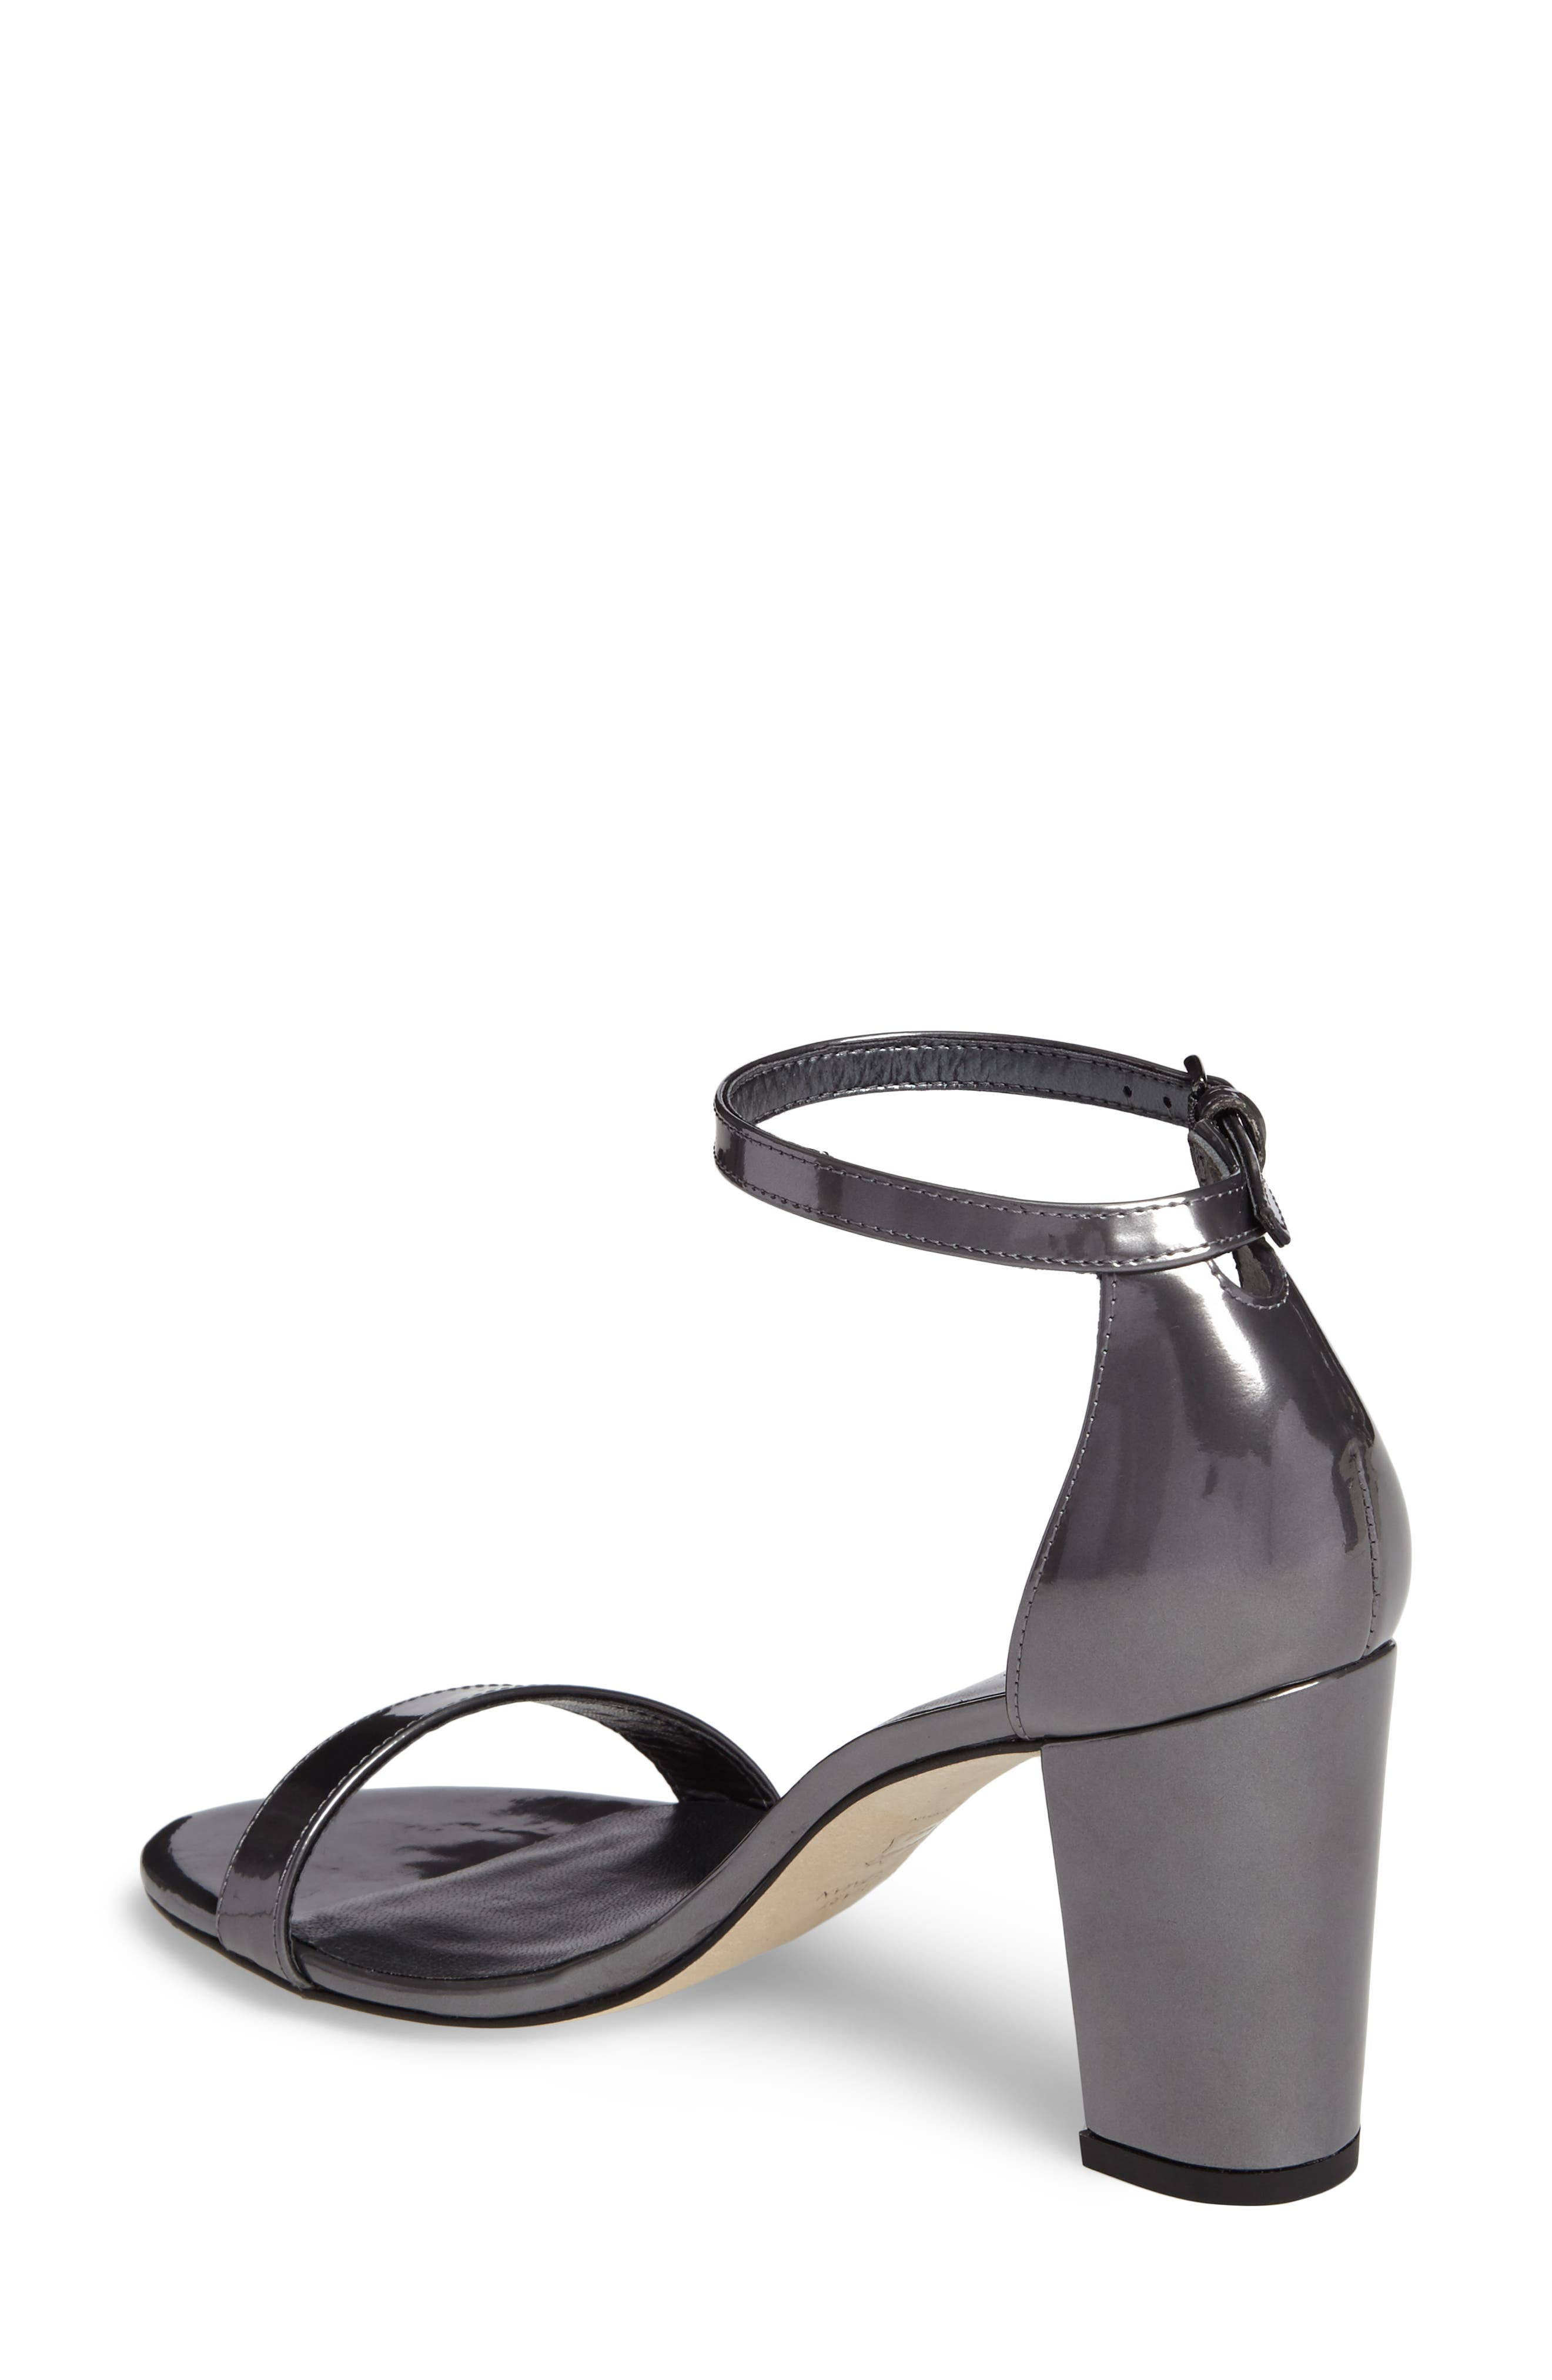 NearlyNude Ankle Strap Sandal,                             Alternate thumbnail 39, color,